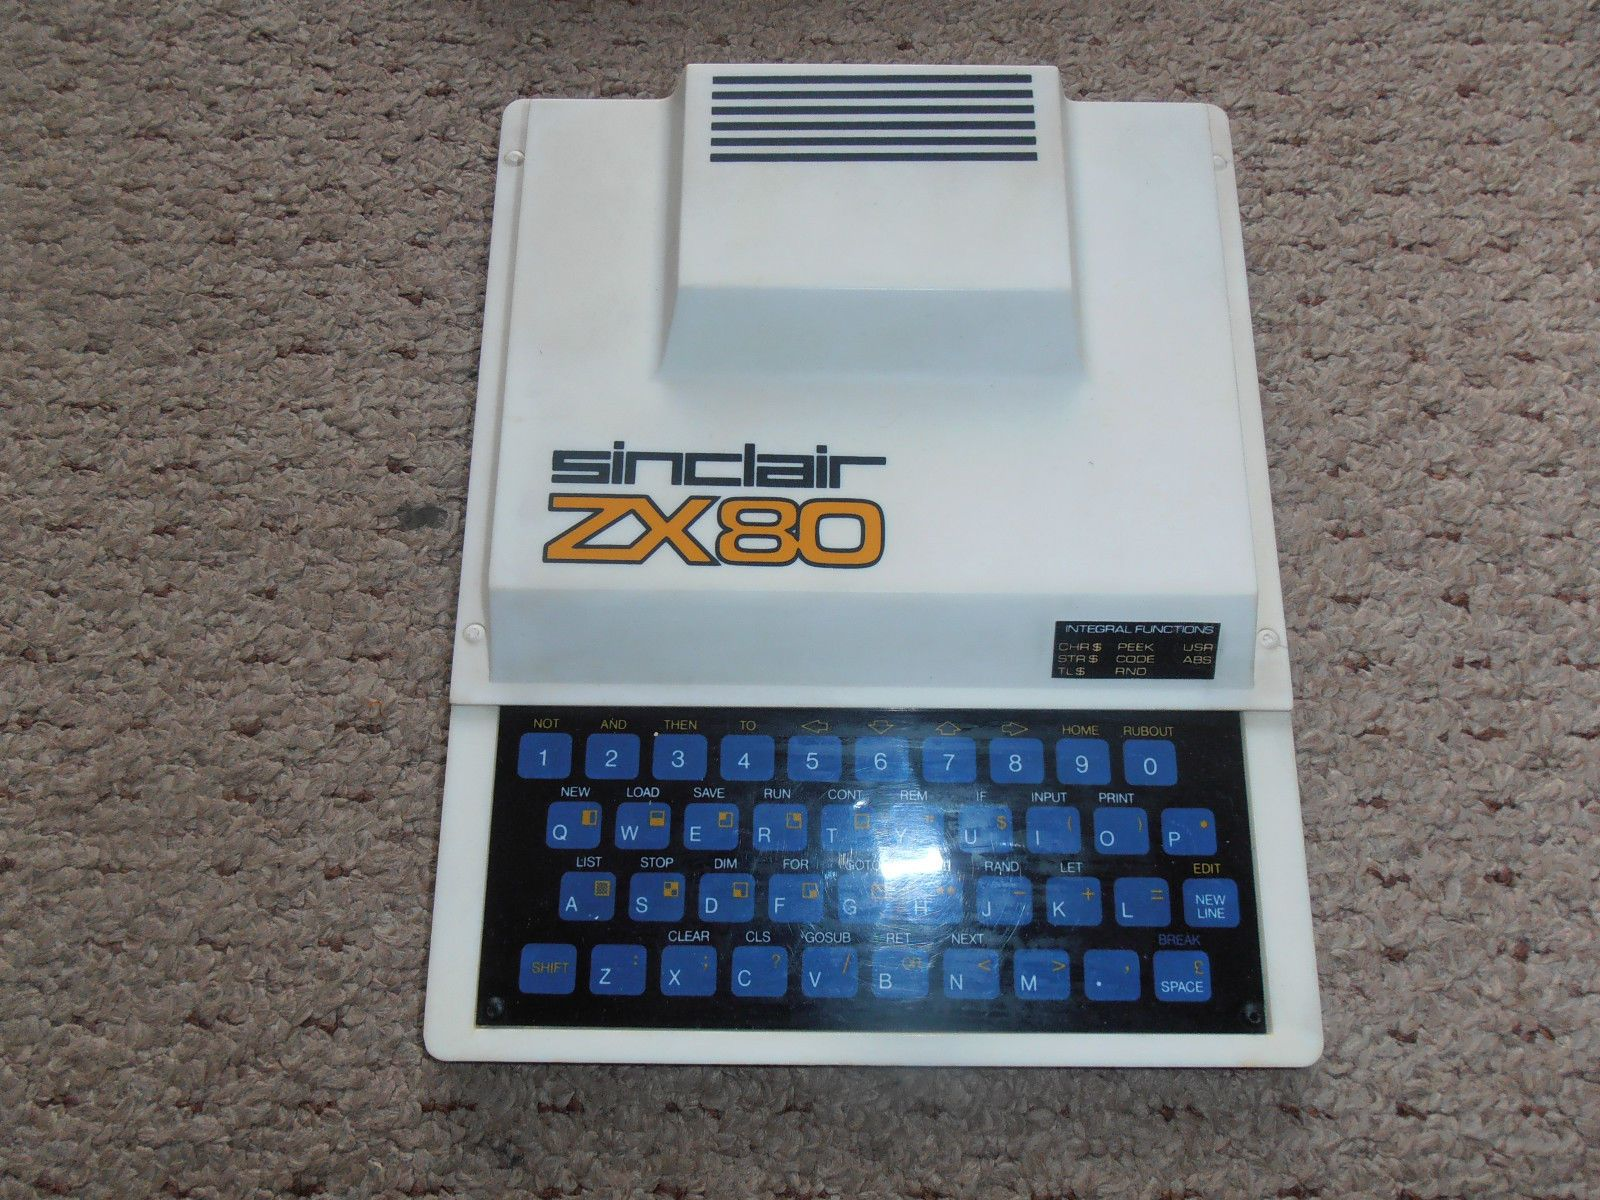 Sinclair ZX80 RARE Vintage Computer Poly Box Working | eBay